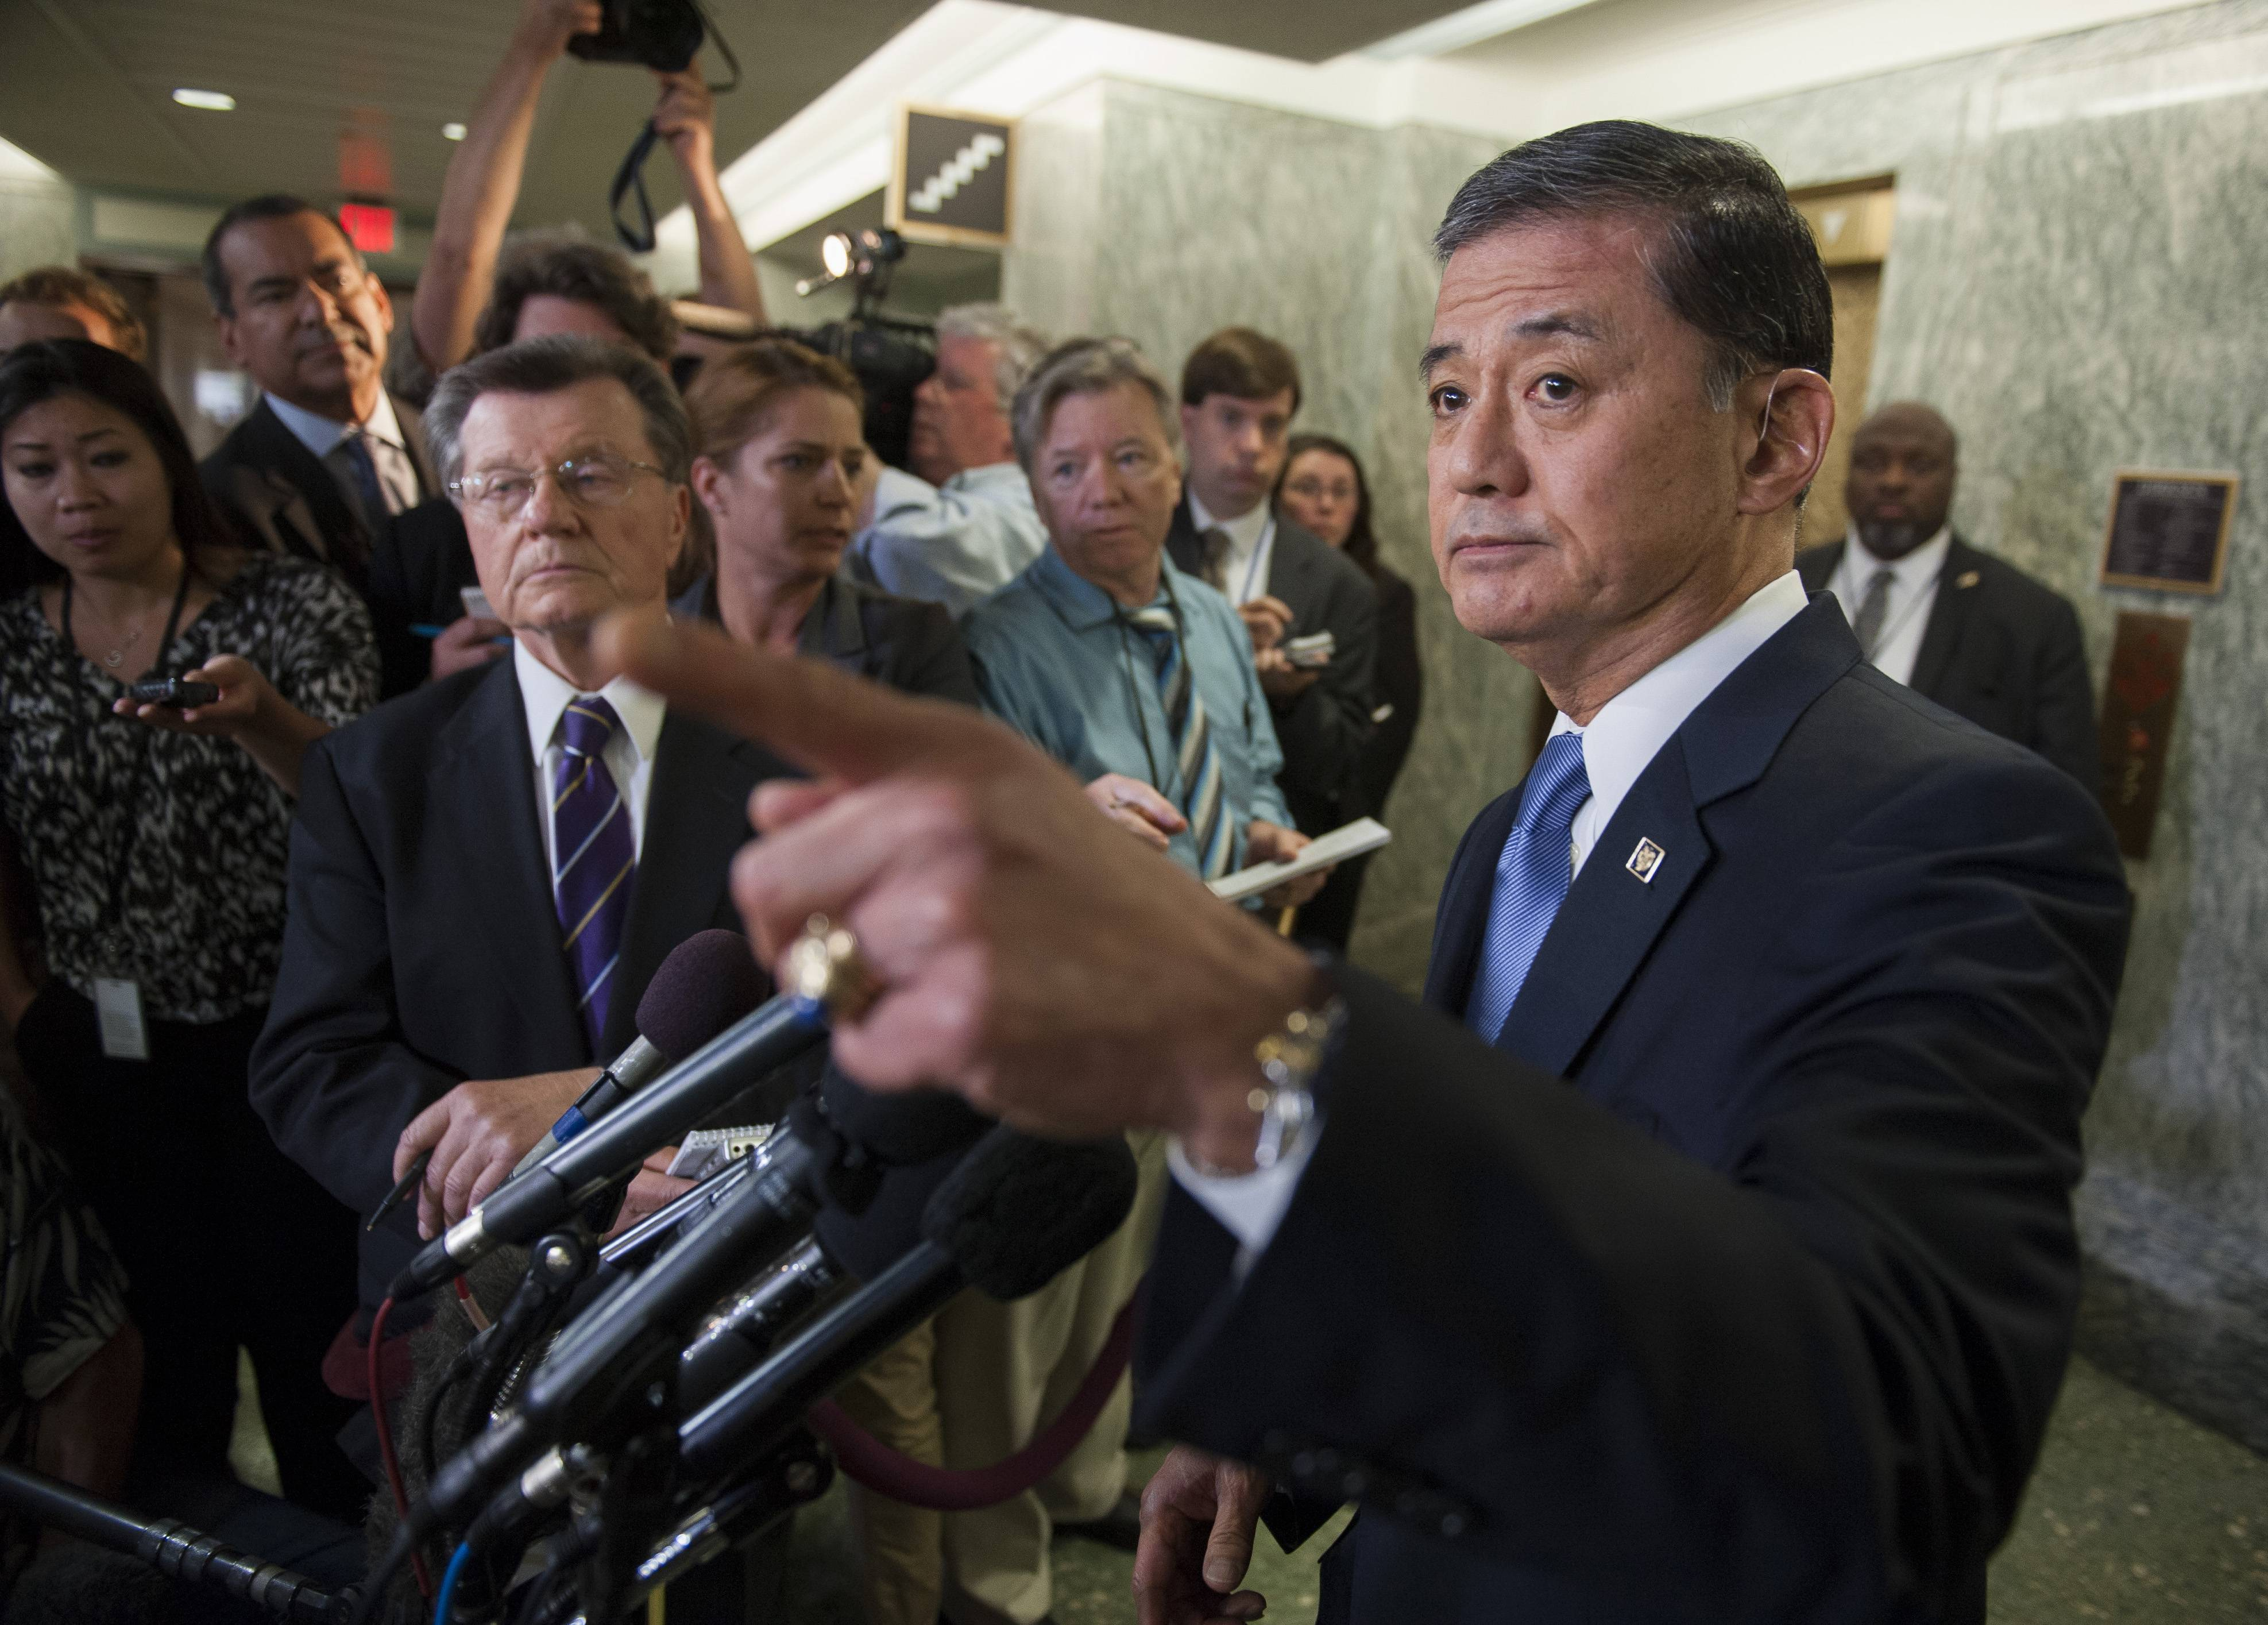 Veterans Affairs Secretary Eric Shinseki gestures during a news conference on Capitol Hill in Washington, Thursday after testifying before the Senate Veterans Affairs Committee hearing to examine the state of Veterans Affairs health care.